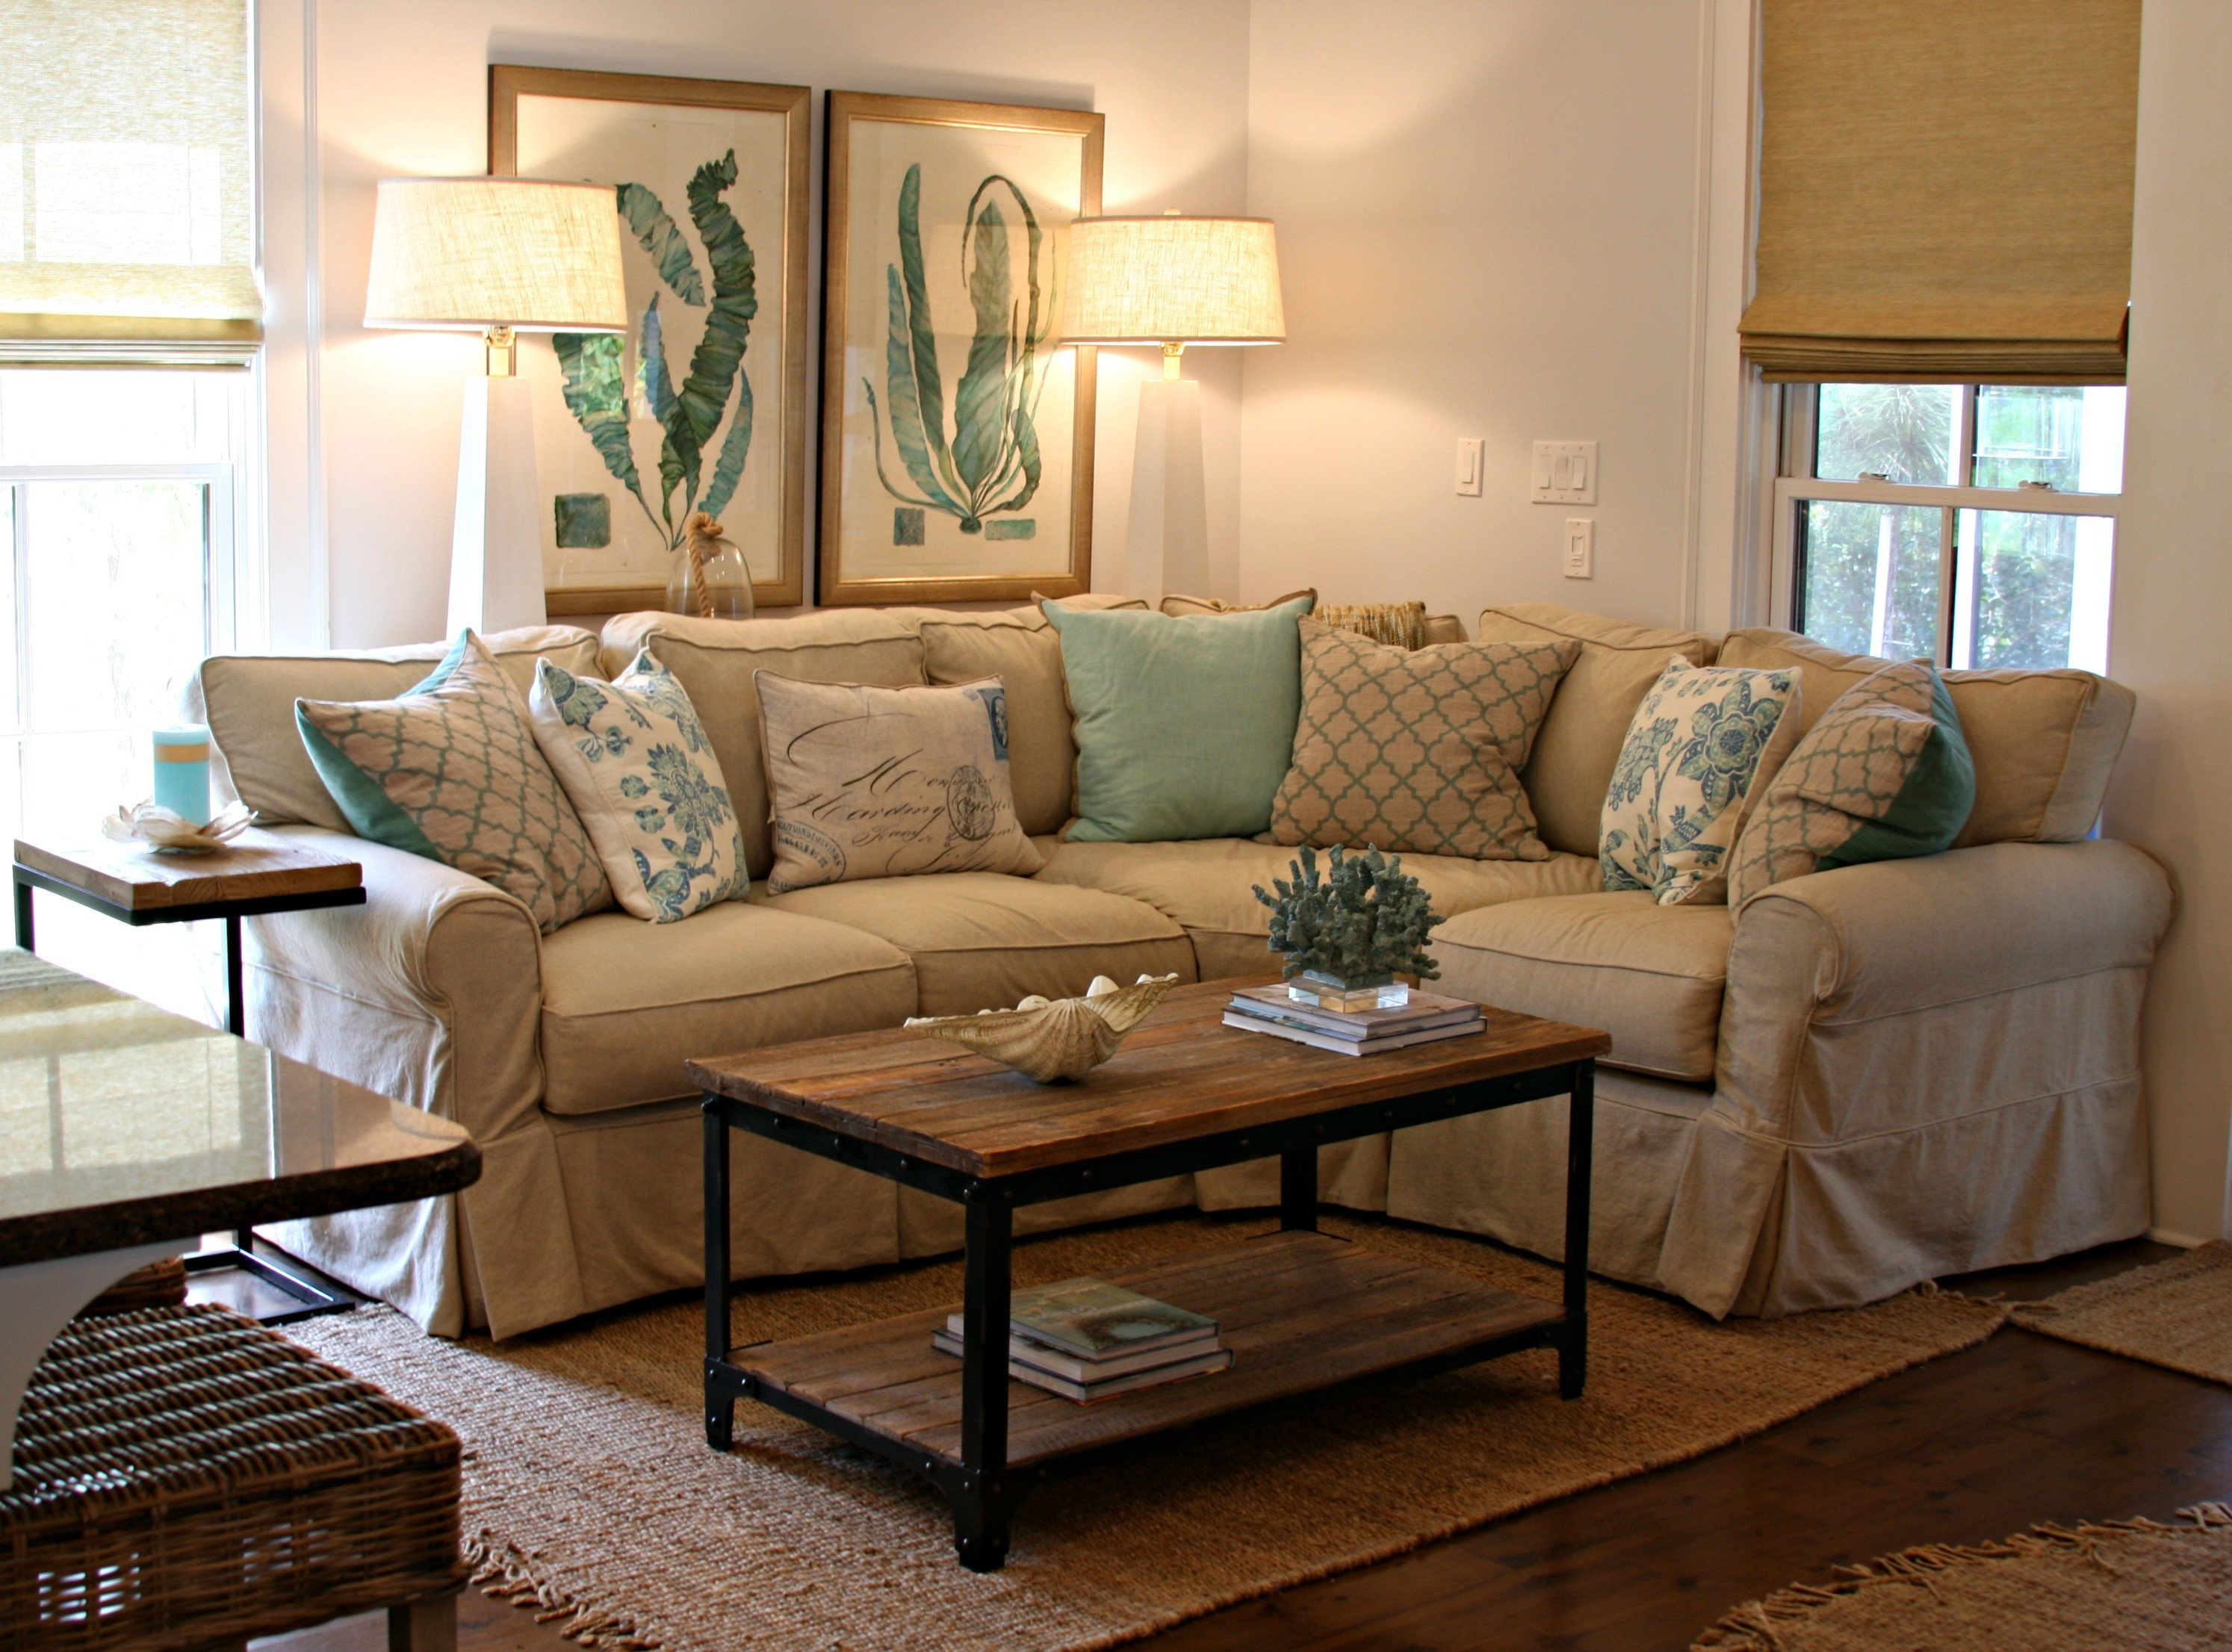 Living Room Decor with Sectional Watersound Beach Cottage Interior Design by andrea